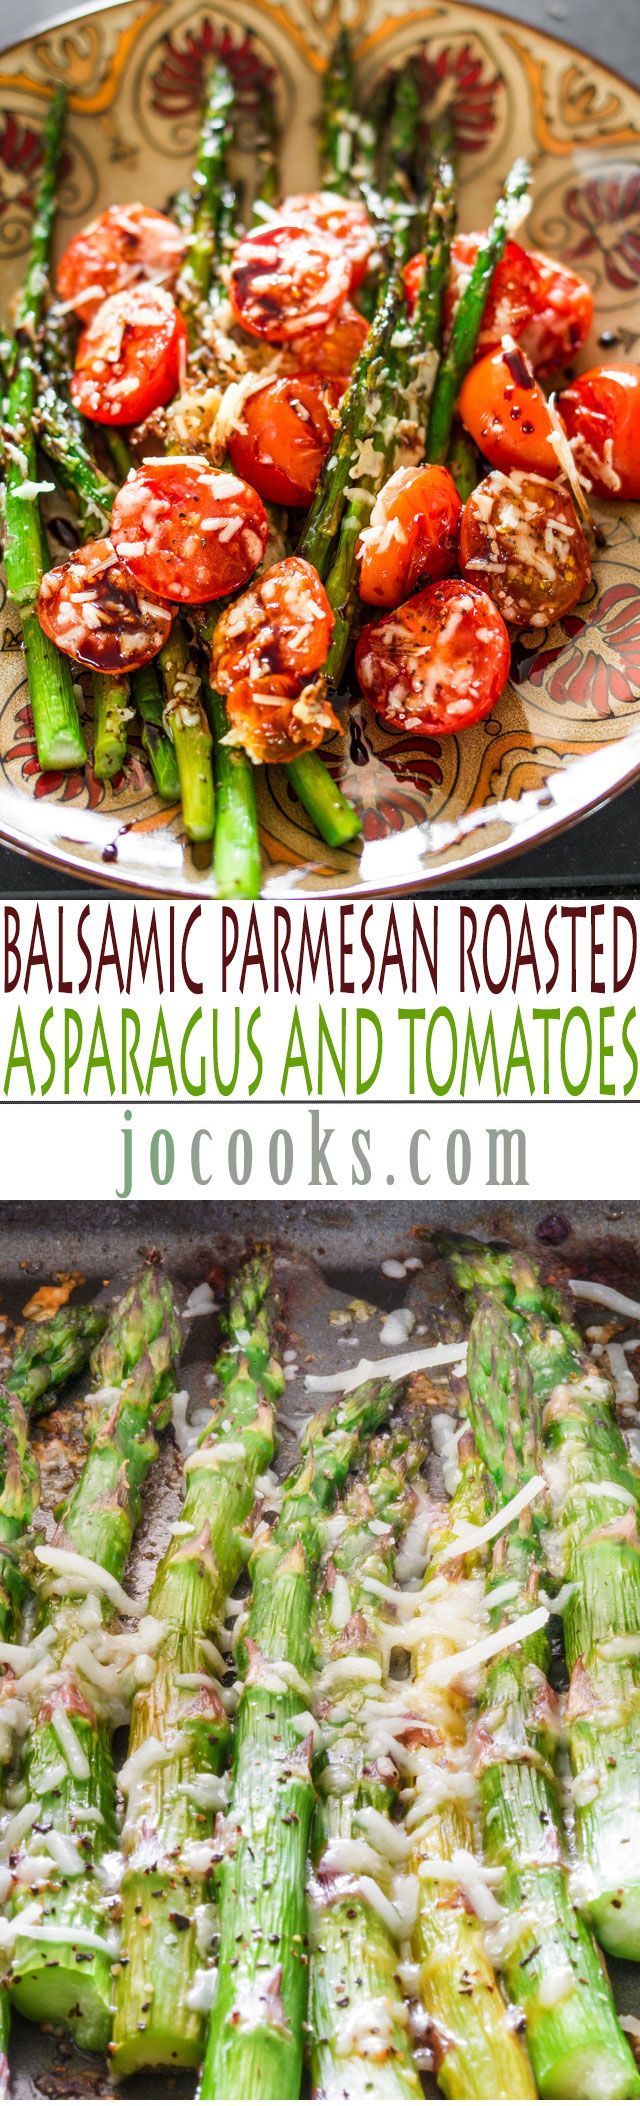 "Mmmmmmm - - can you tell that we REALLY like Asparagus? I may have to make a separate board for ""Absolutely Asparagus!"" Gotta try this Balsamic Parmesan Roasted Asparagus and Tomatoes"